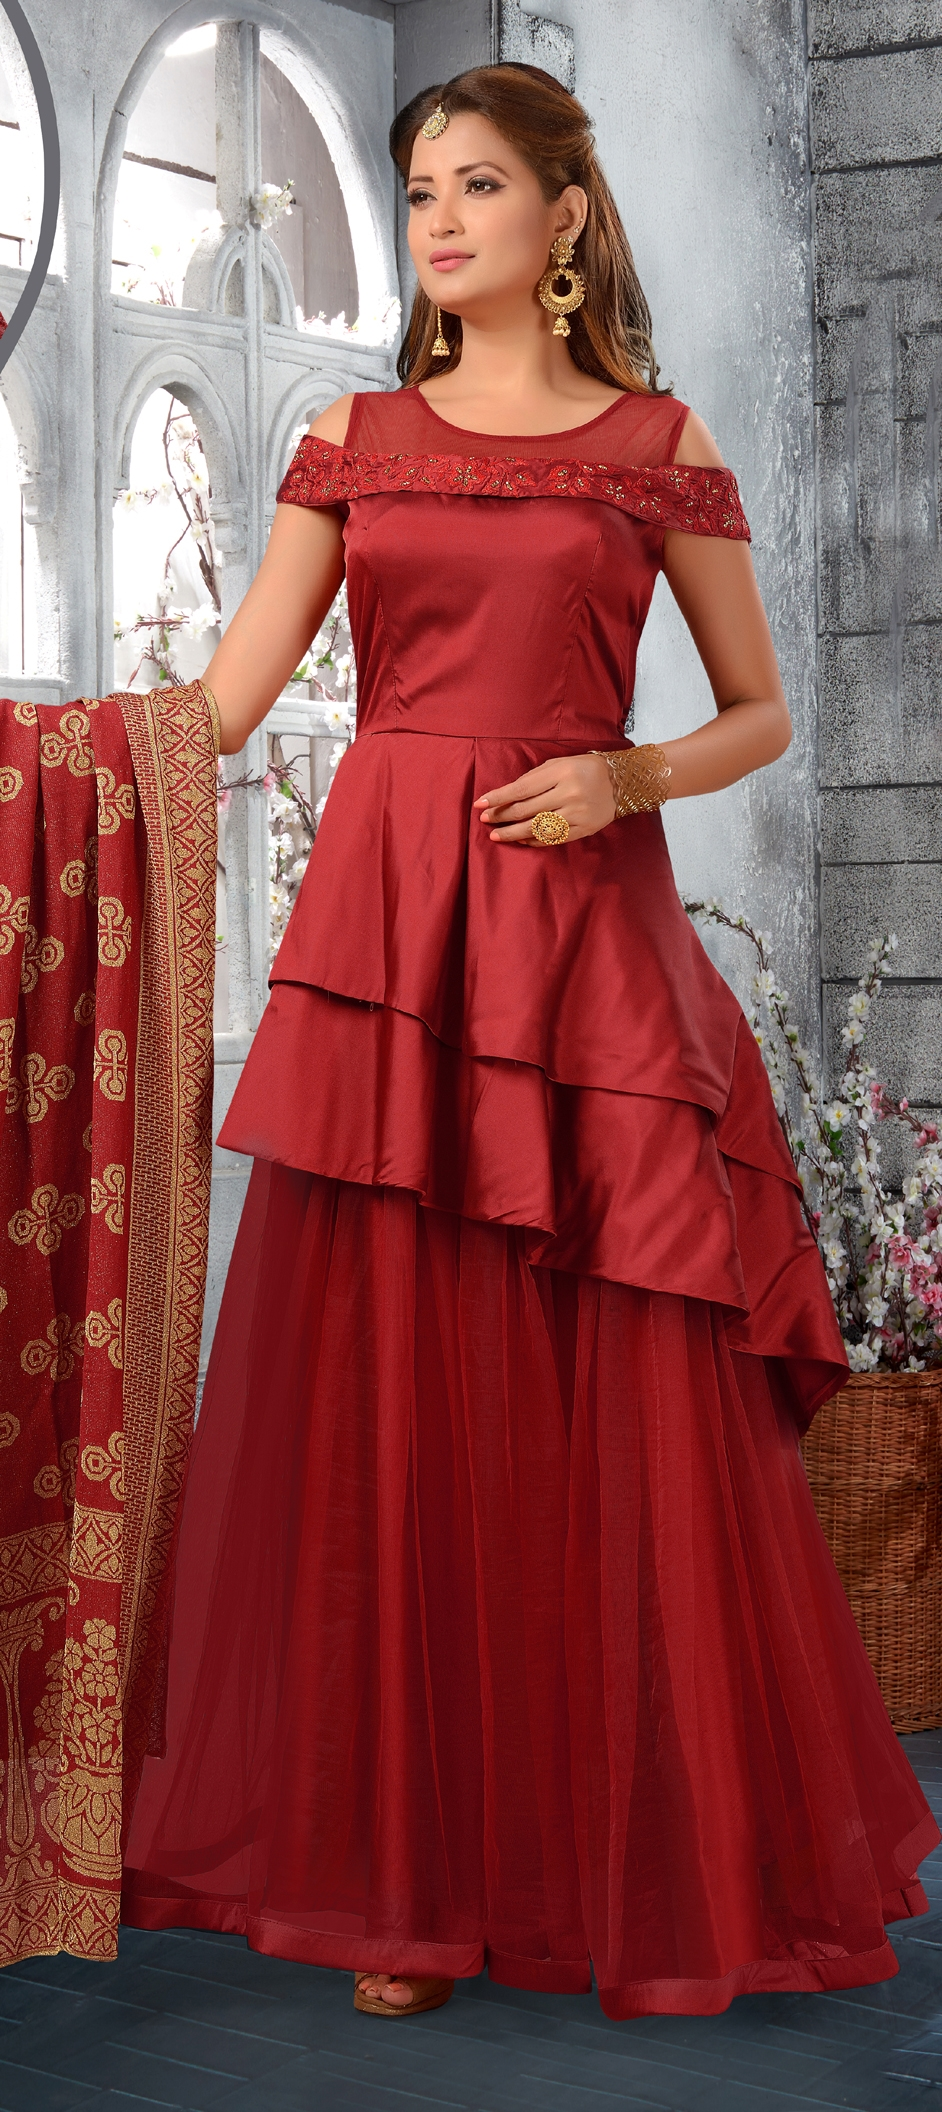 1508367: Festive, Party Wear Red and Maroon color Taffeta Silk ...